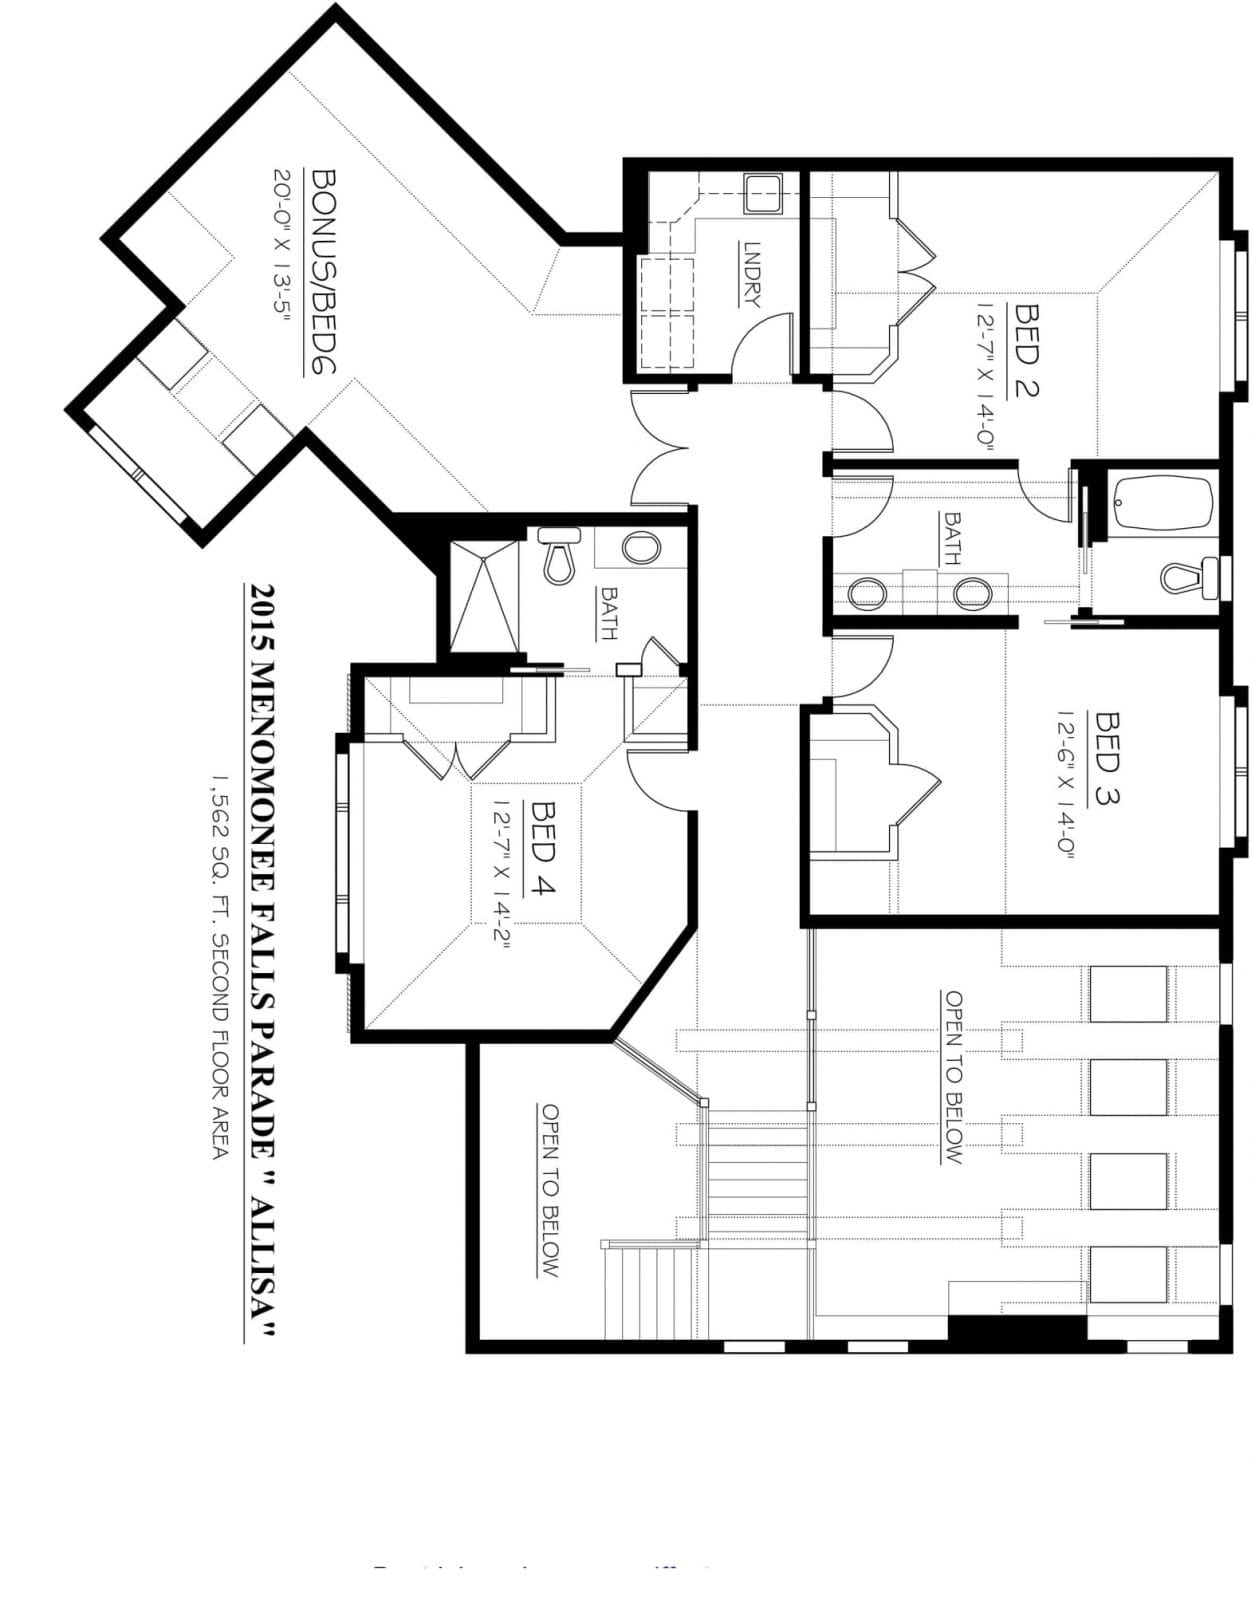 Kaerek Homes Allisa Second Floor Plan